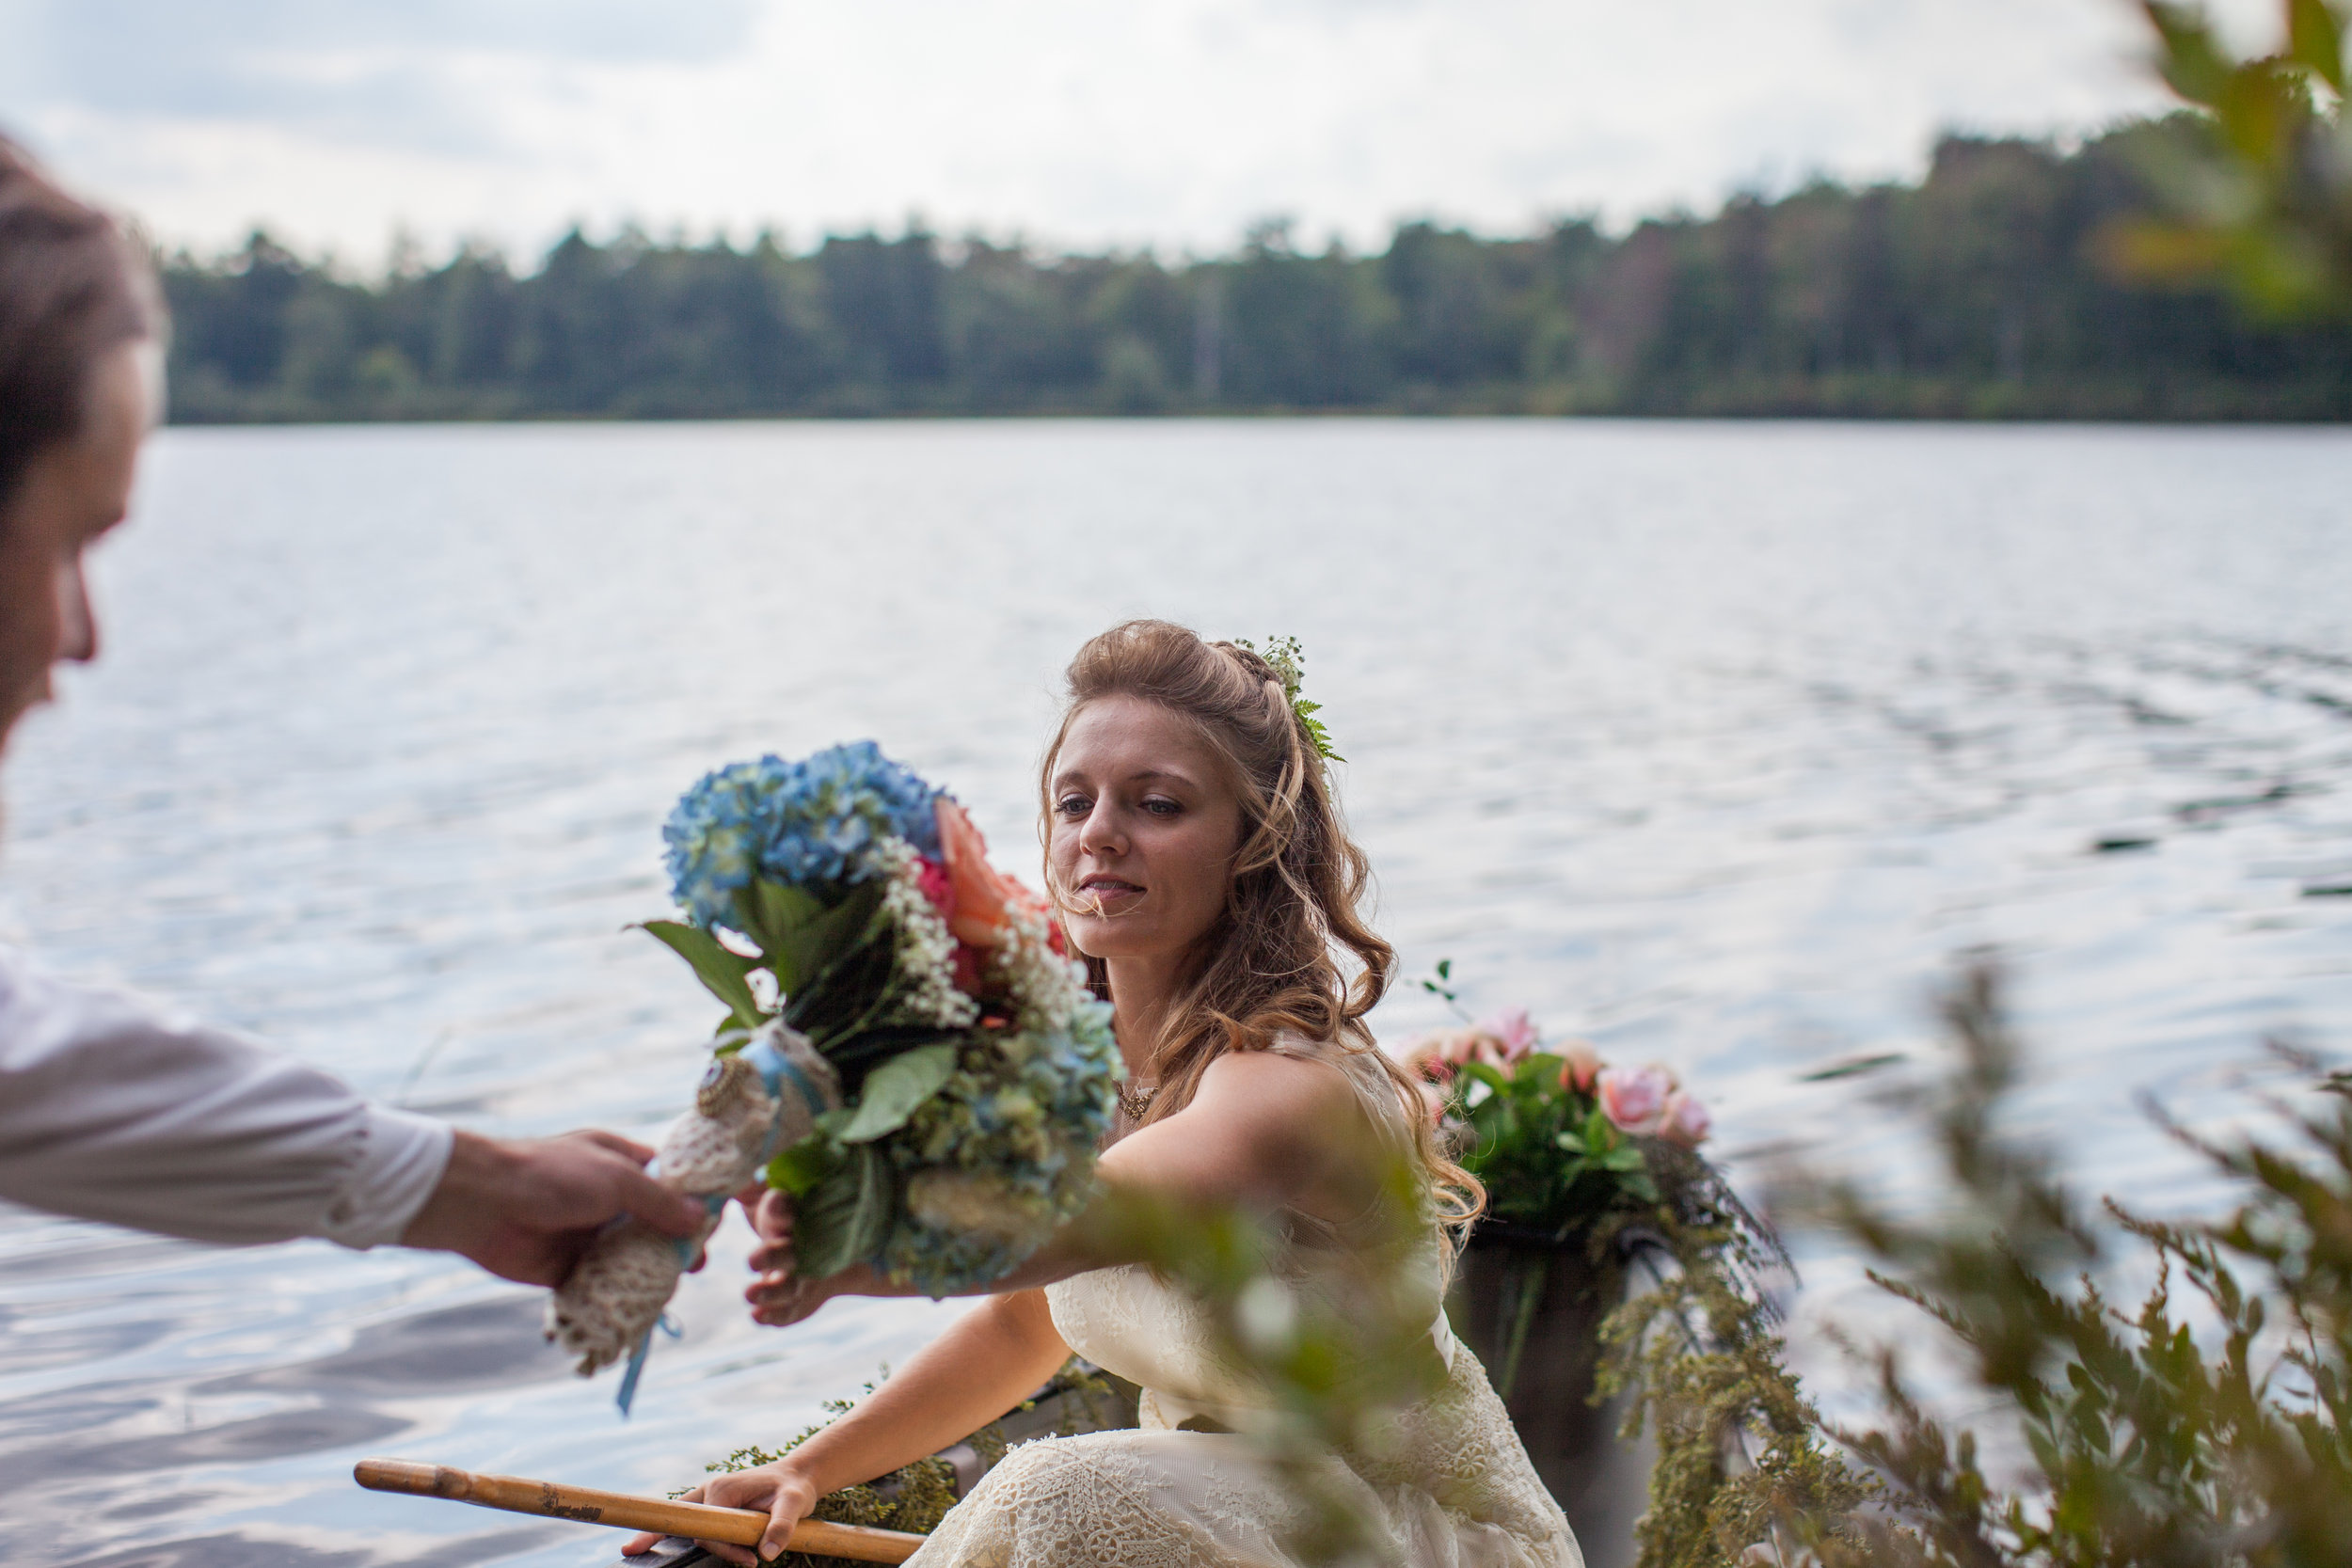 THE COUPLE'S FIRST CANOE RIDE